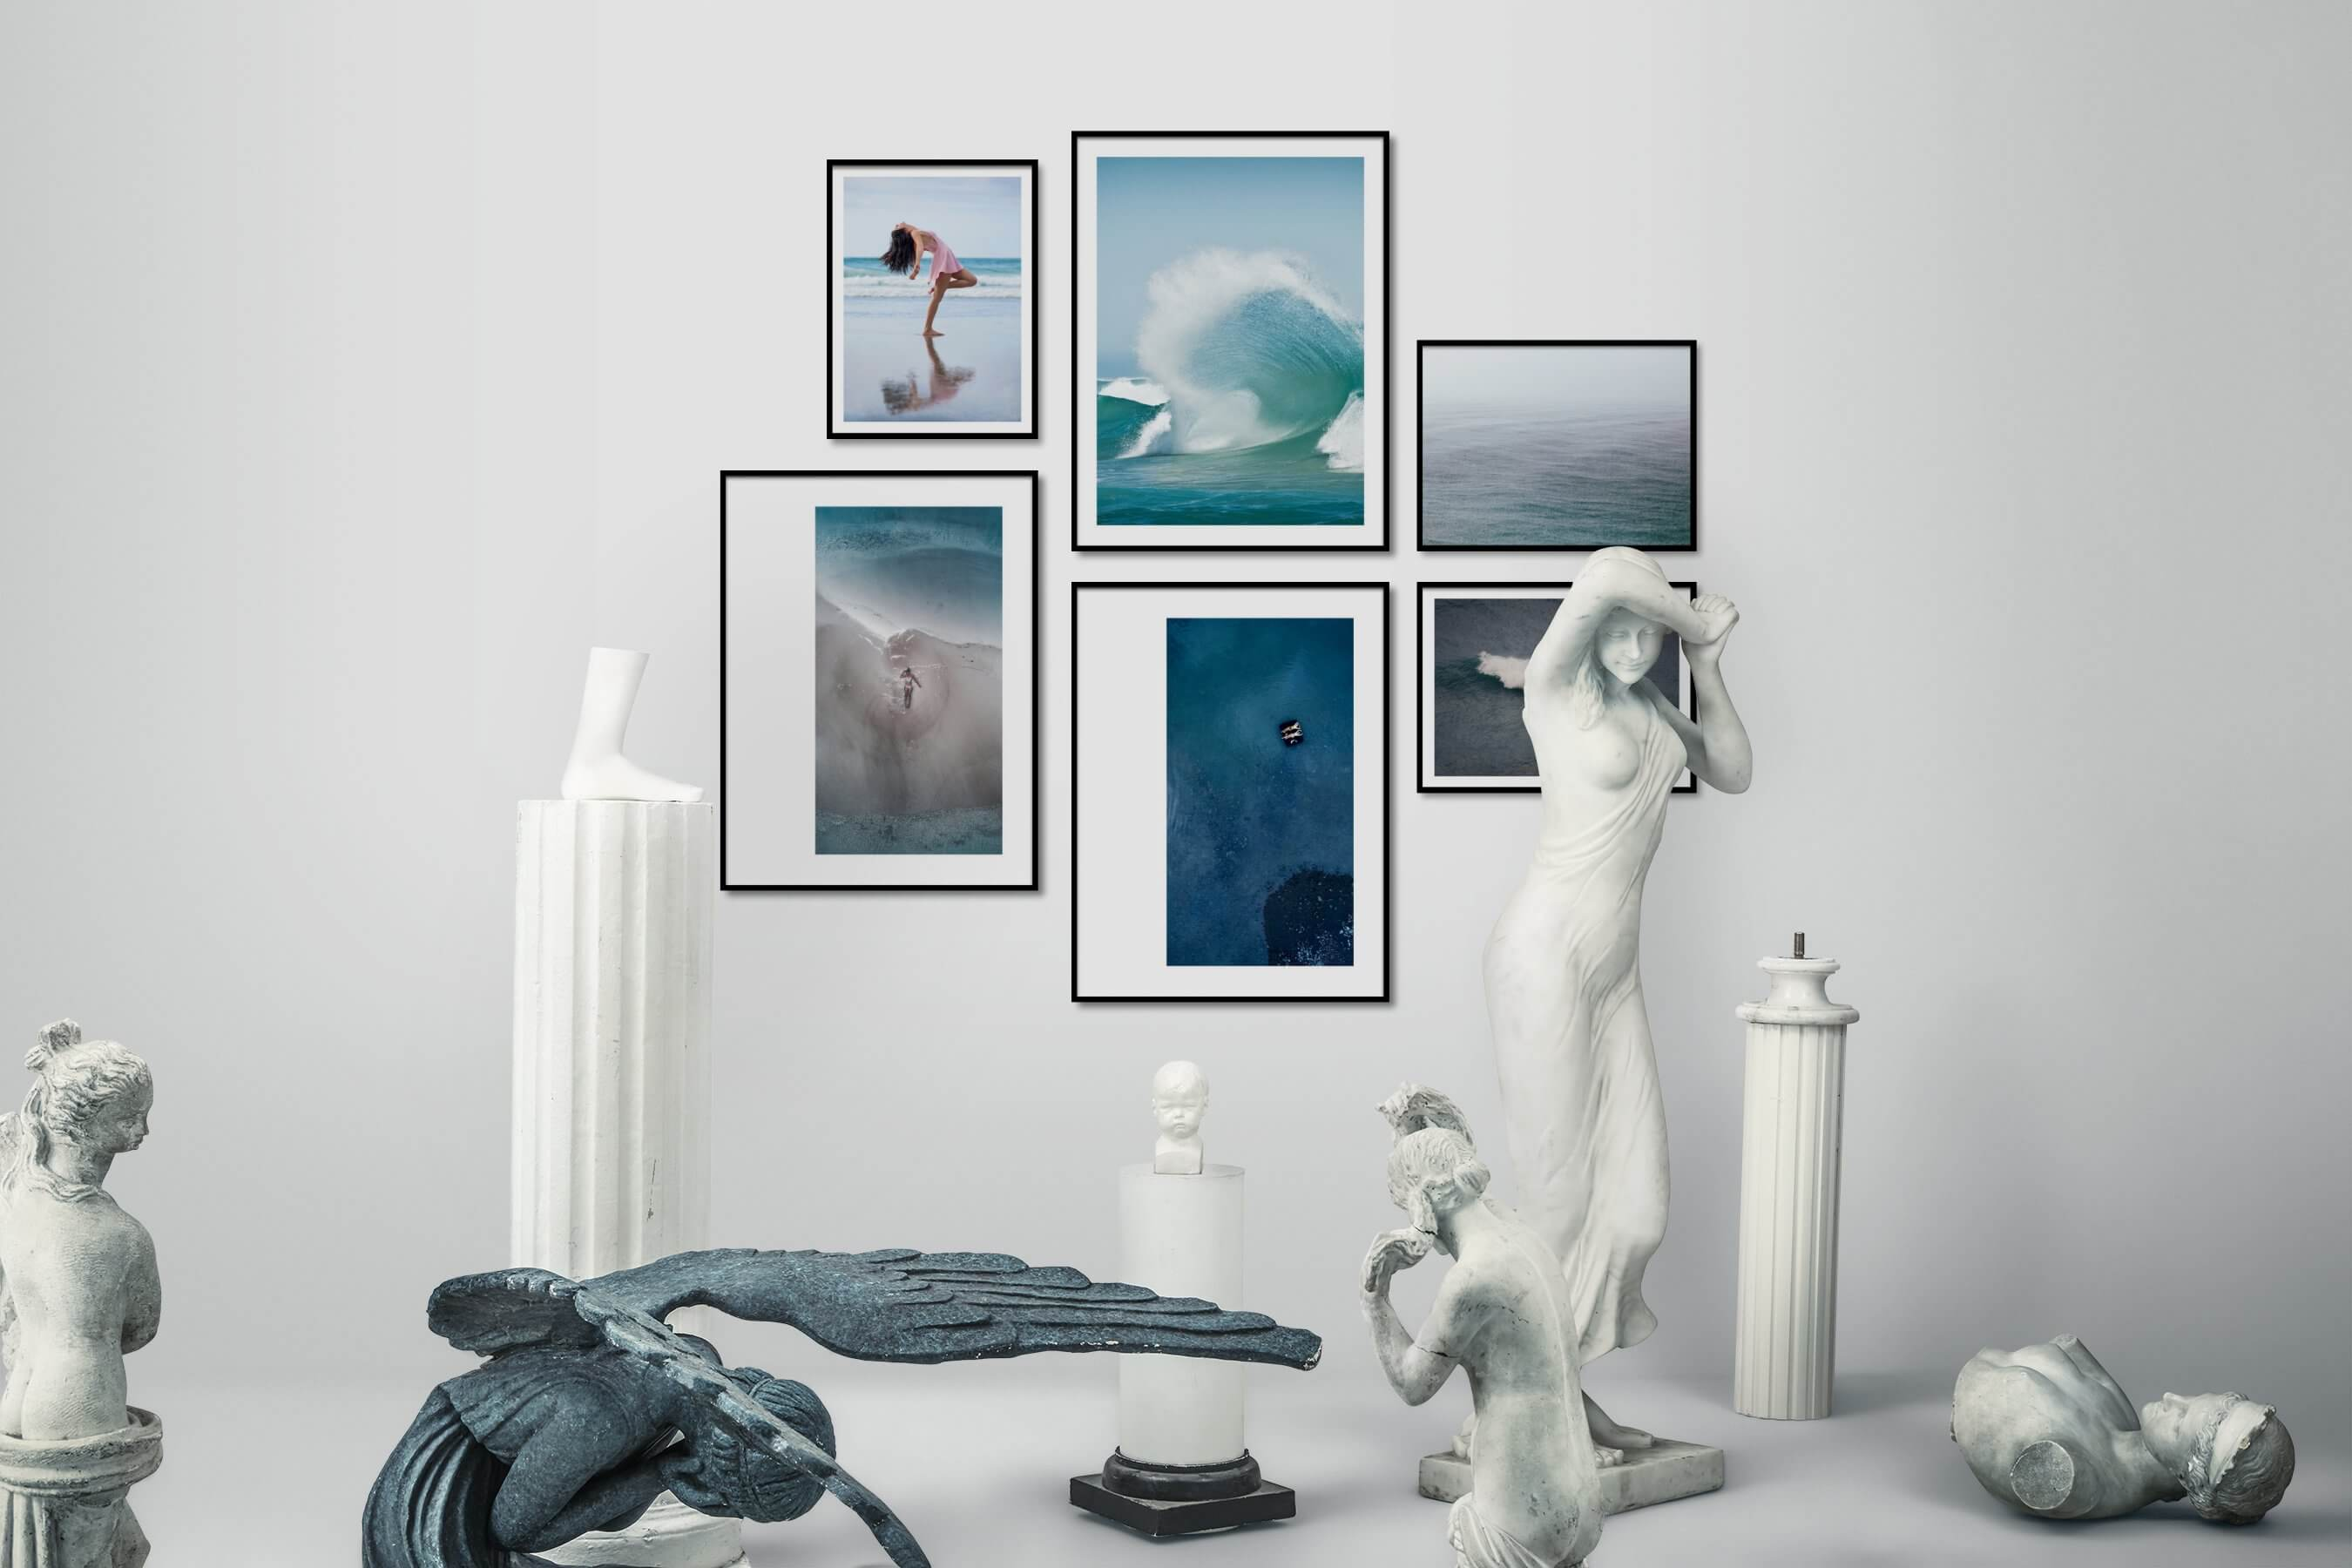 Gallery wall idea with six framed pictures arranged on a wall depicting Fashion & Beauty, Beach & Water, Mindfulness, For the Moderate, and For the Minimalist